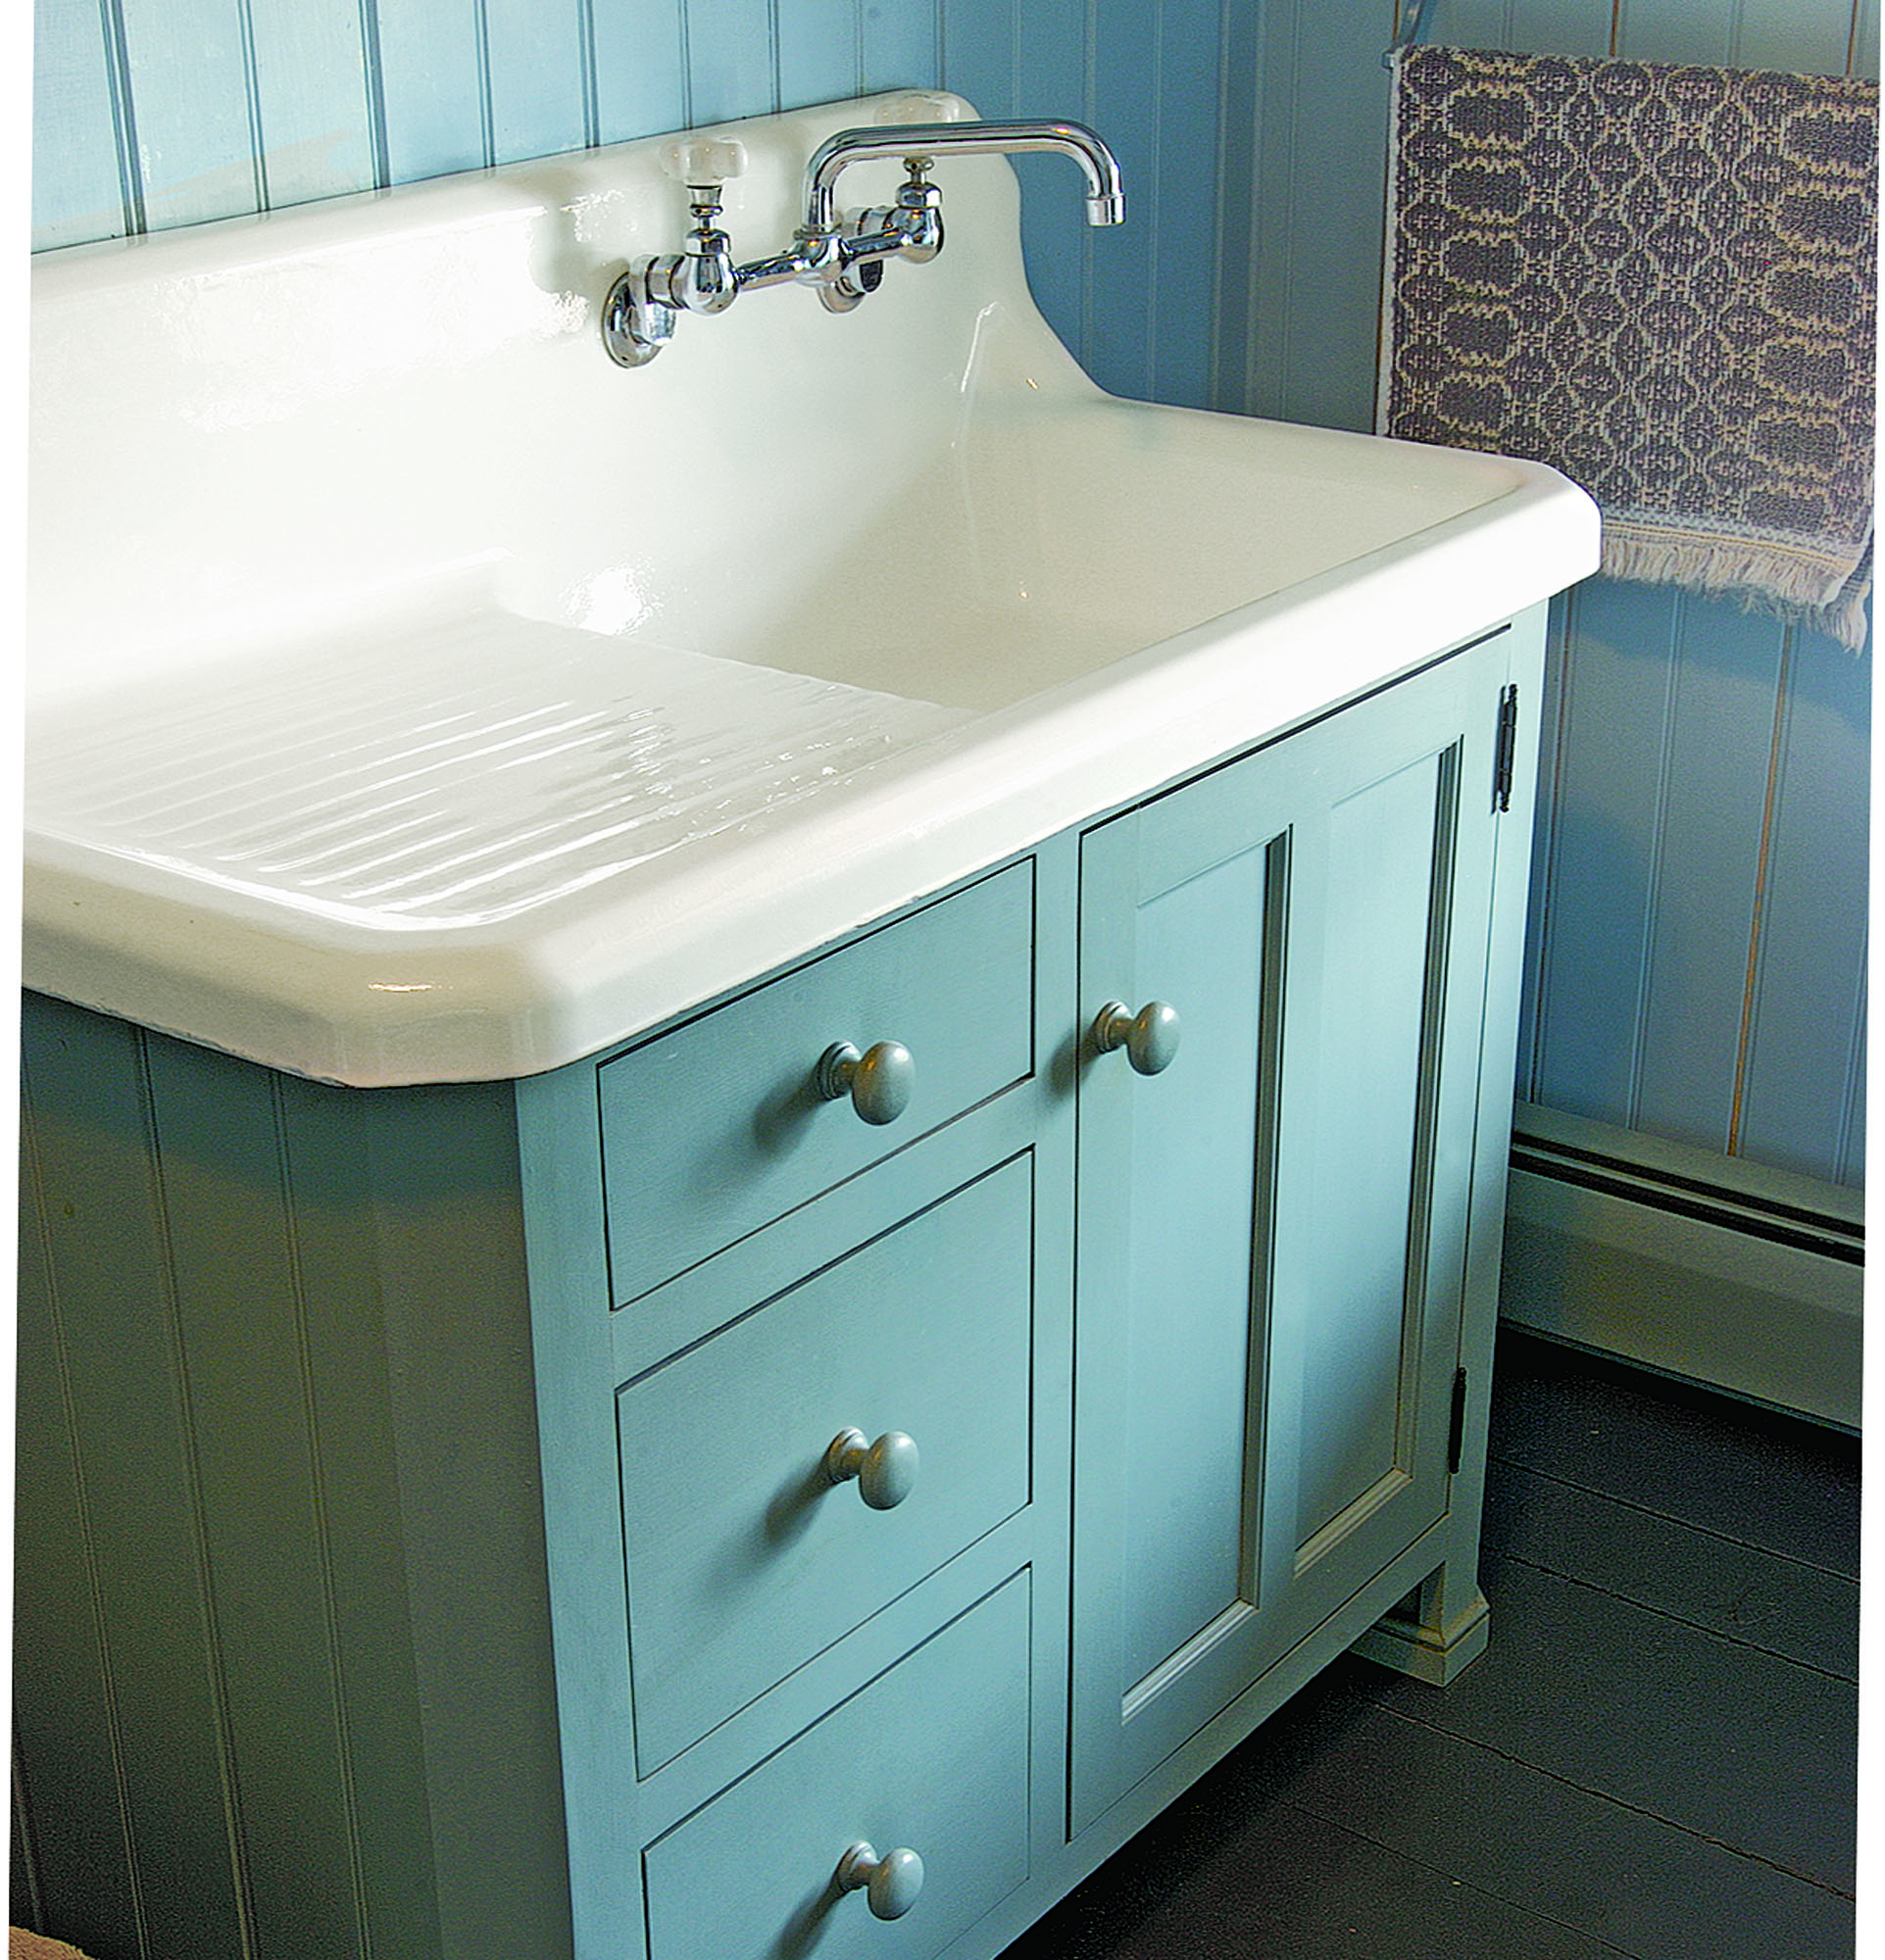 Crown-Point Cabinetry custom bath vanity